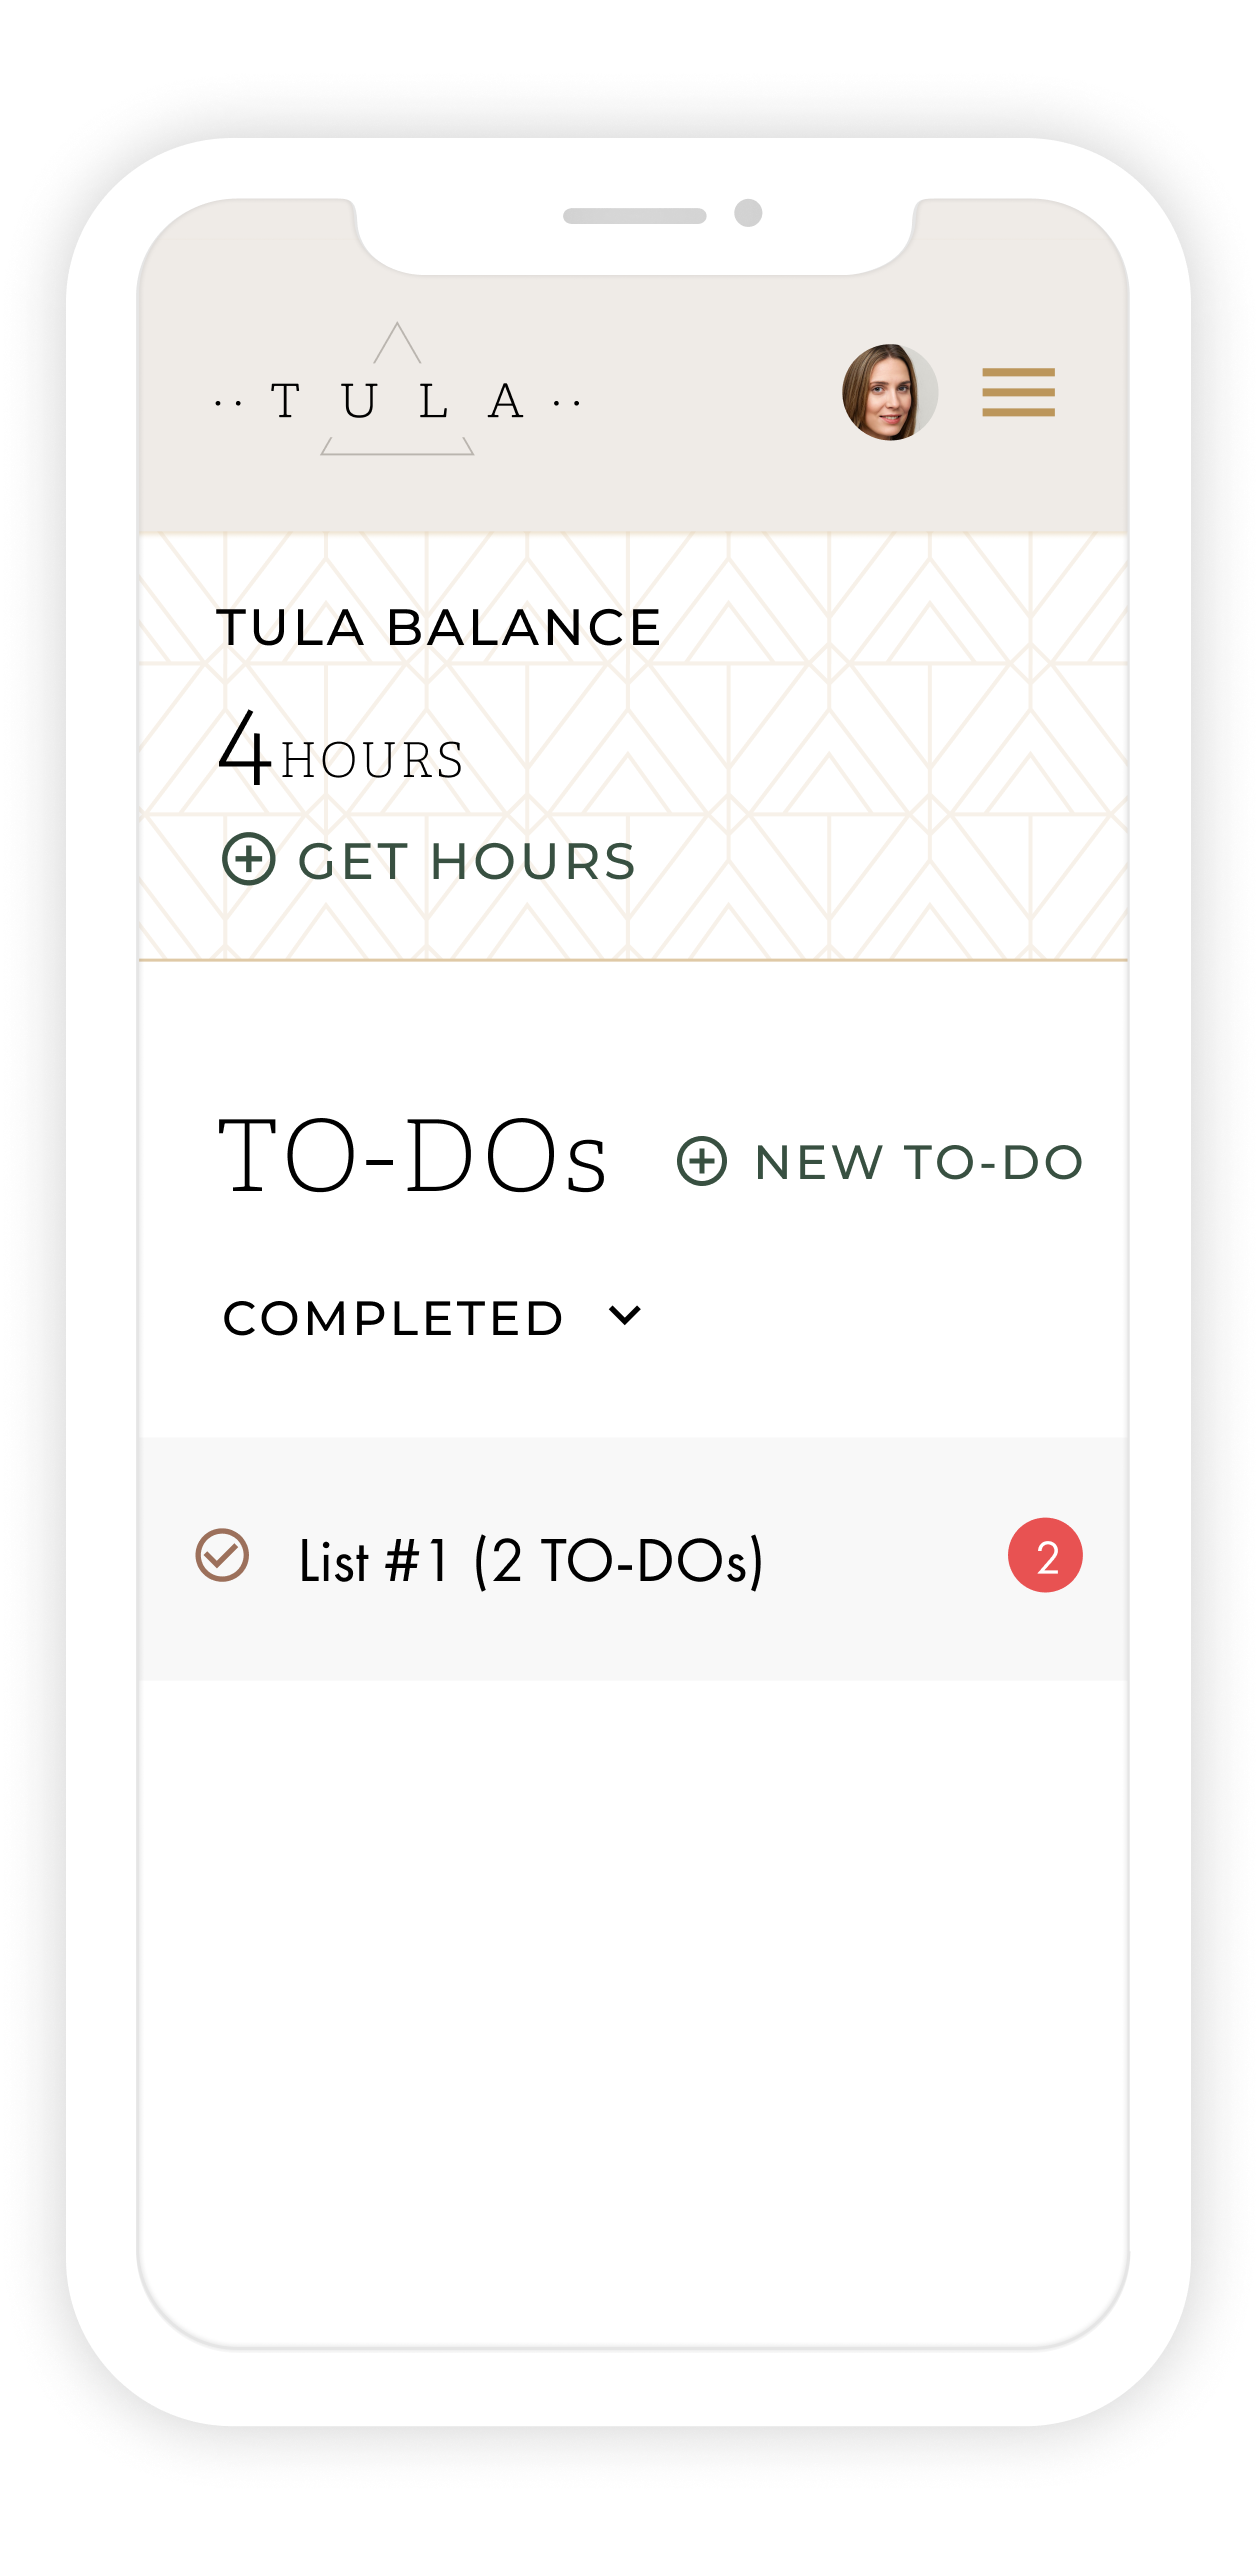 A cell phone display showing a completed to-do list on the TULA app.